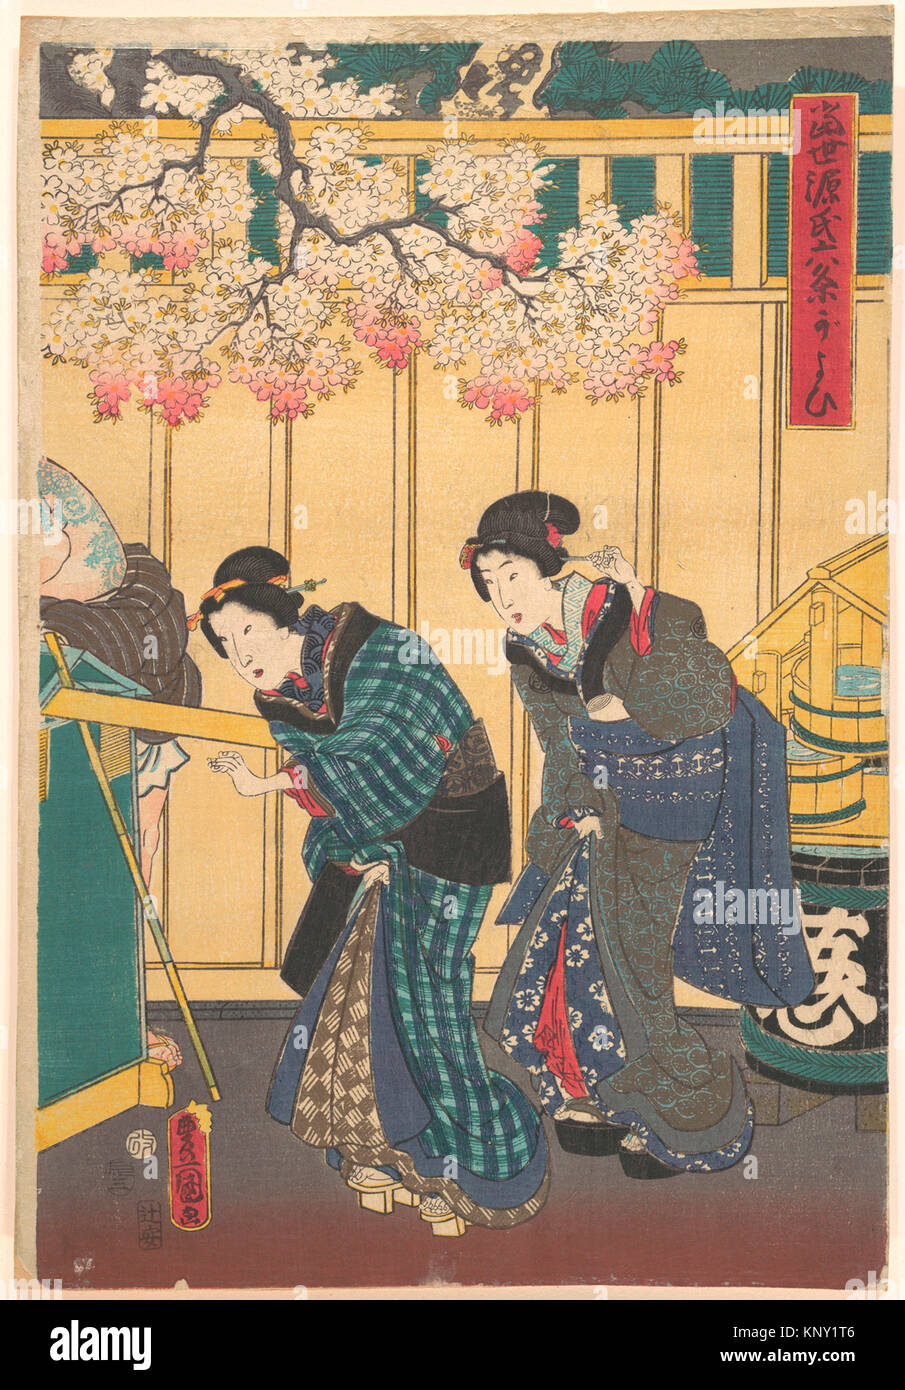 Artist: Utagawa Kunisada (Japanese, 1786-1865); Period: Edo period  (1615-1868); Culture: Japan; Medium: Polychrome woodblock print; ink and